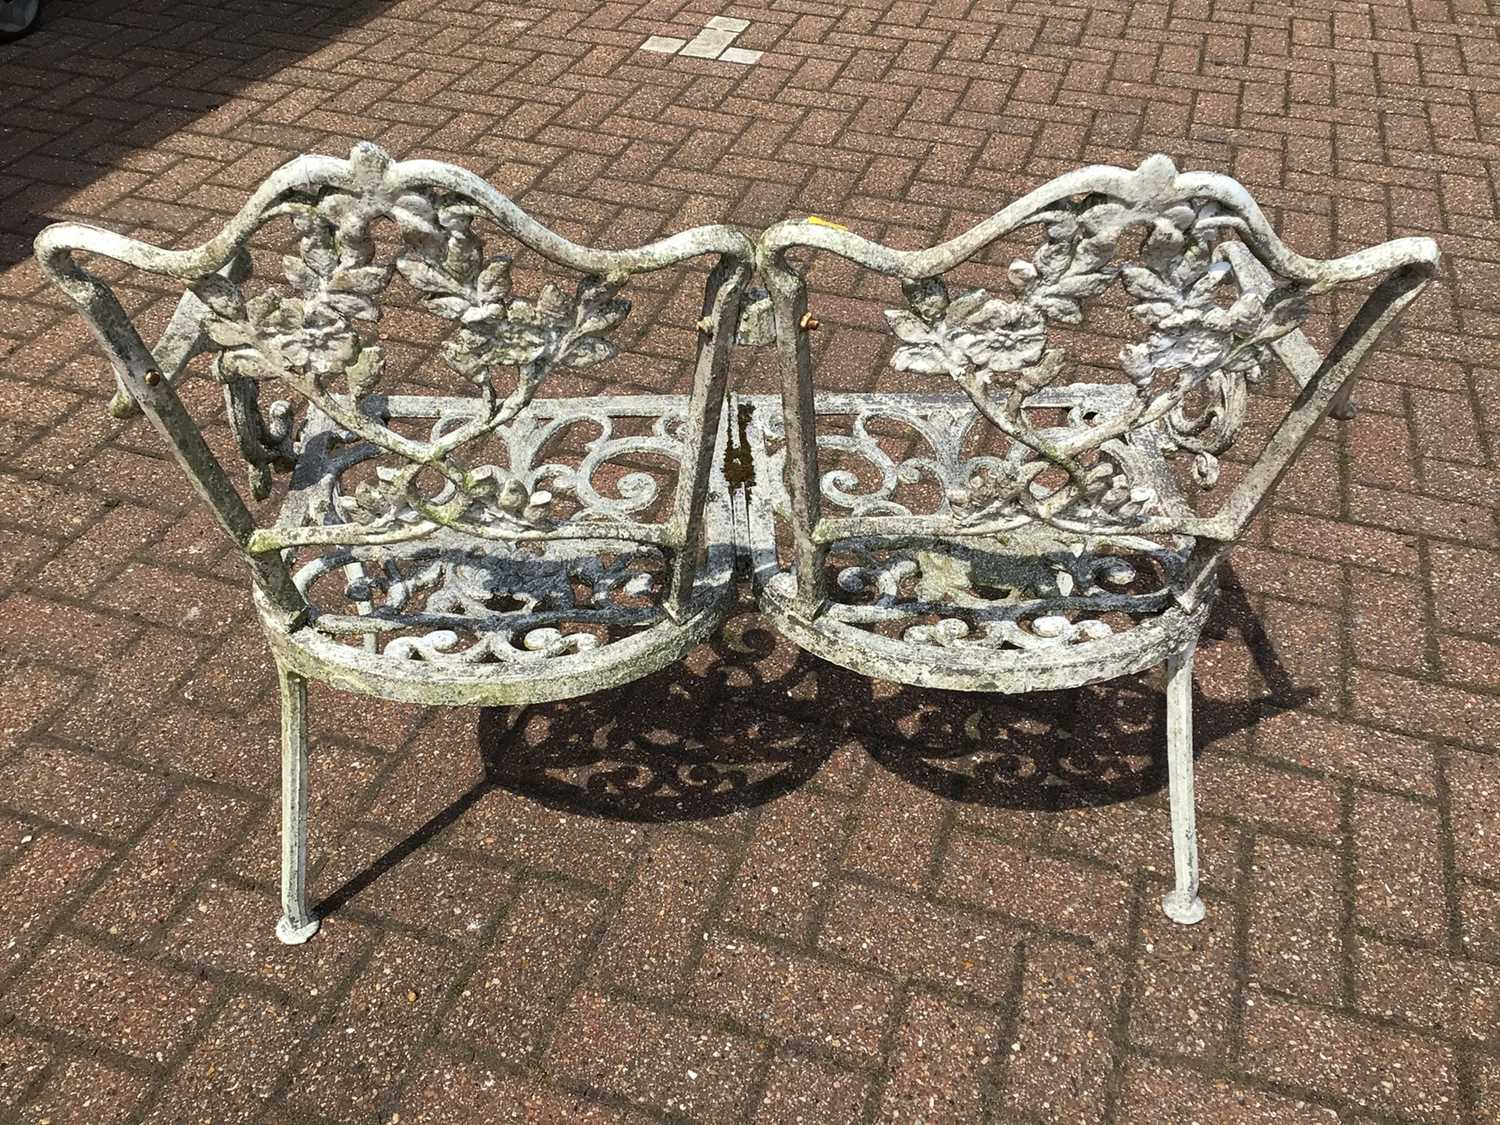 Aluminium two seater garden bench 91cm wide x 84cm high with a revolving office chair - Image 2 of 4